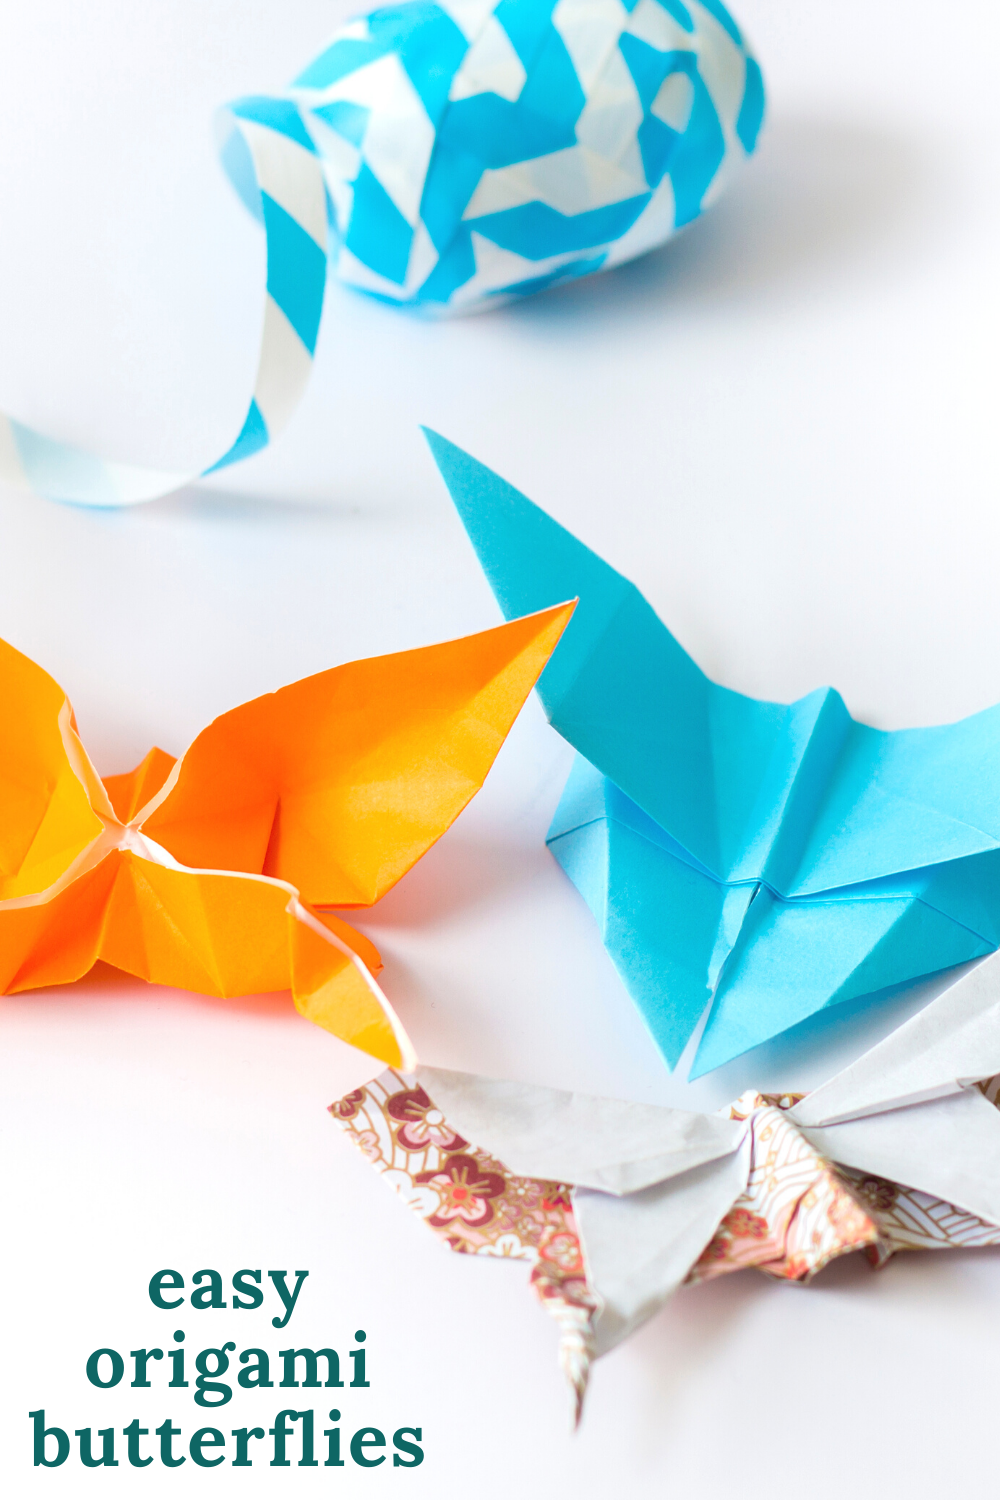 easy origami butterflies